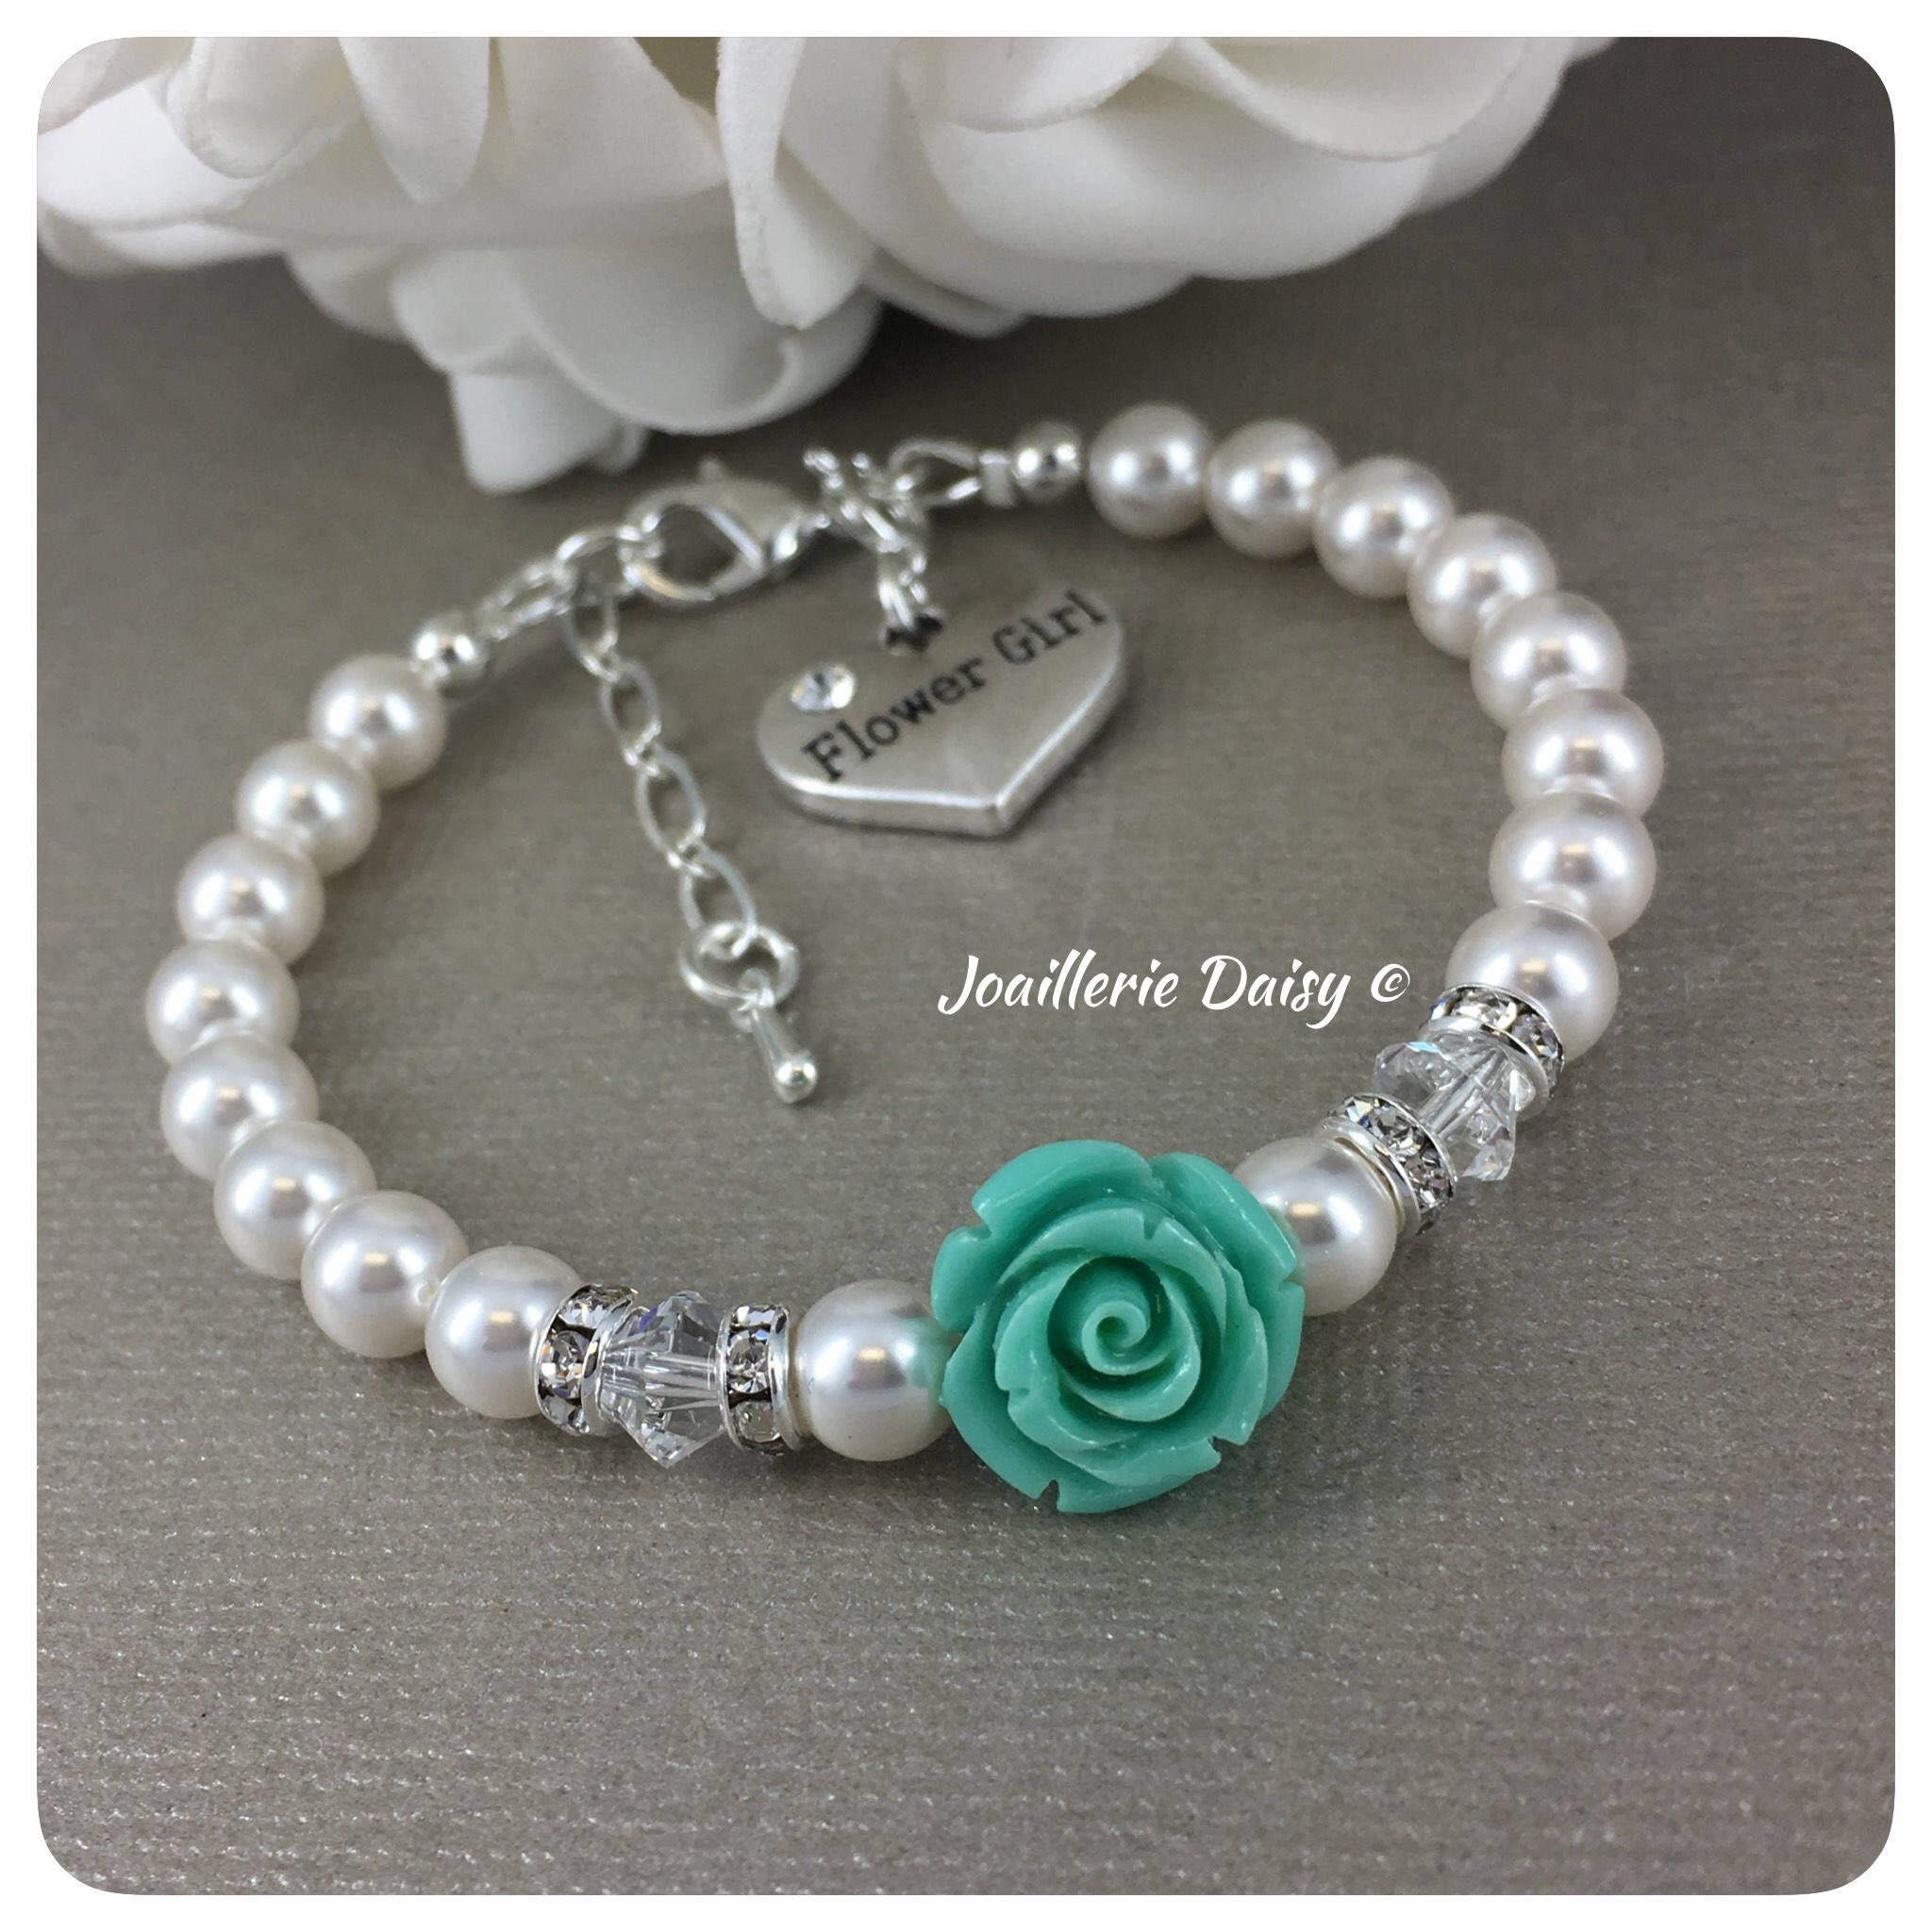 bracelet products crafts handmade proposal collection swanky gift girl friendship flowergirl flower